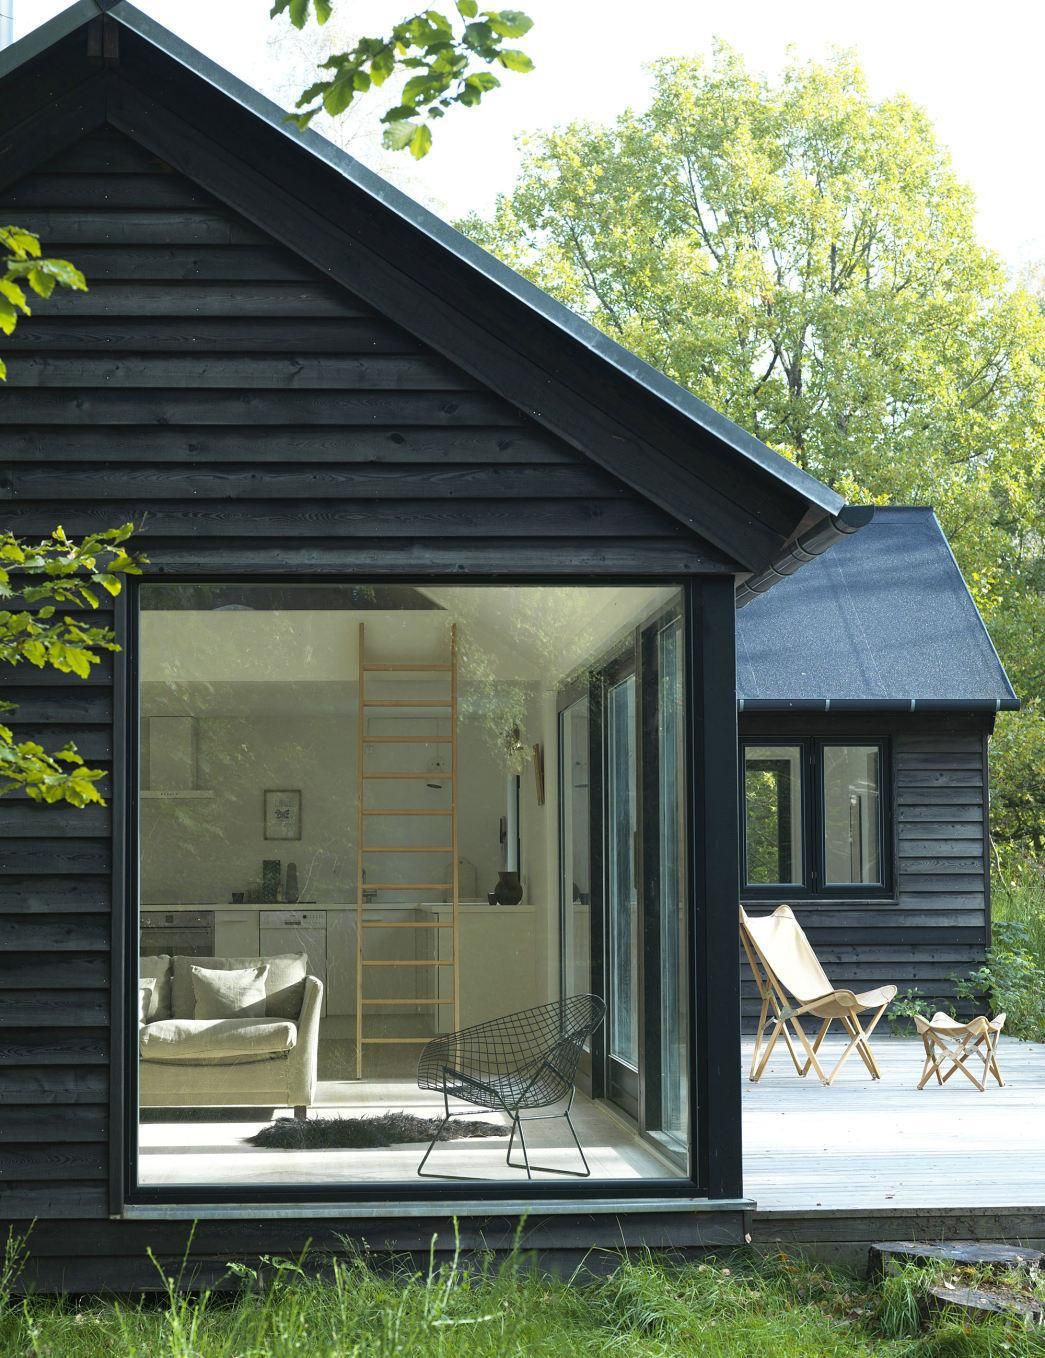 Exterior modern siding window design   modern and minimalist prefab homes  danish denmark and cabin